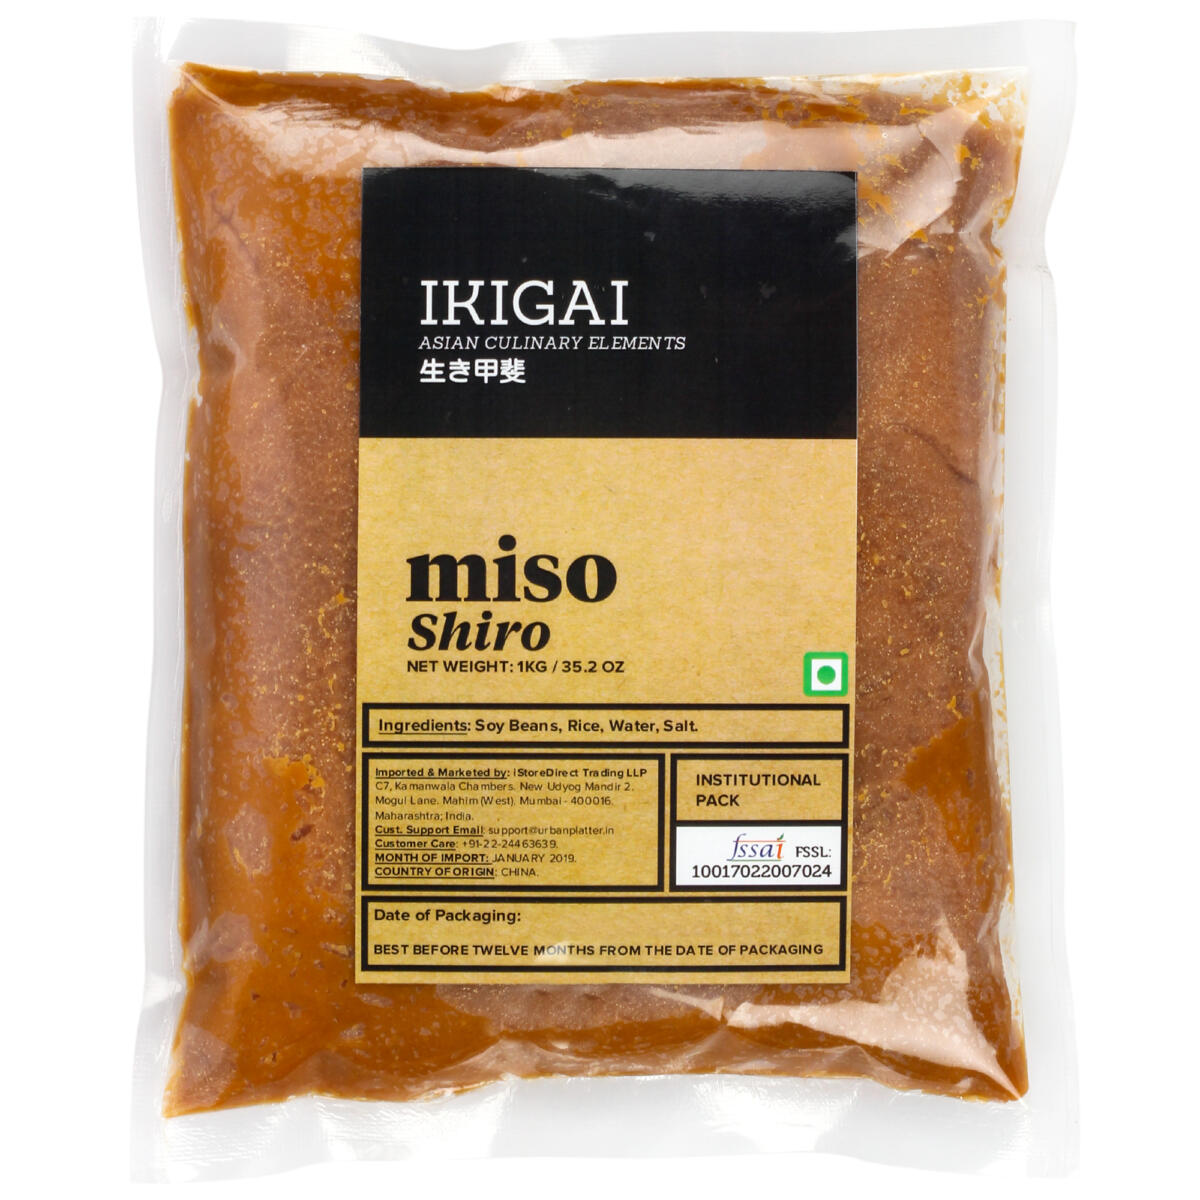 IKIGAI Shiro Miso Paste,1Kg / 35.2oz [All Natural, Light Miso & Soy-Based]